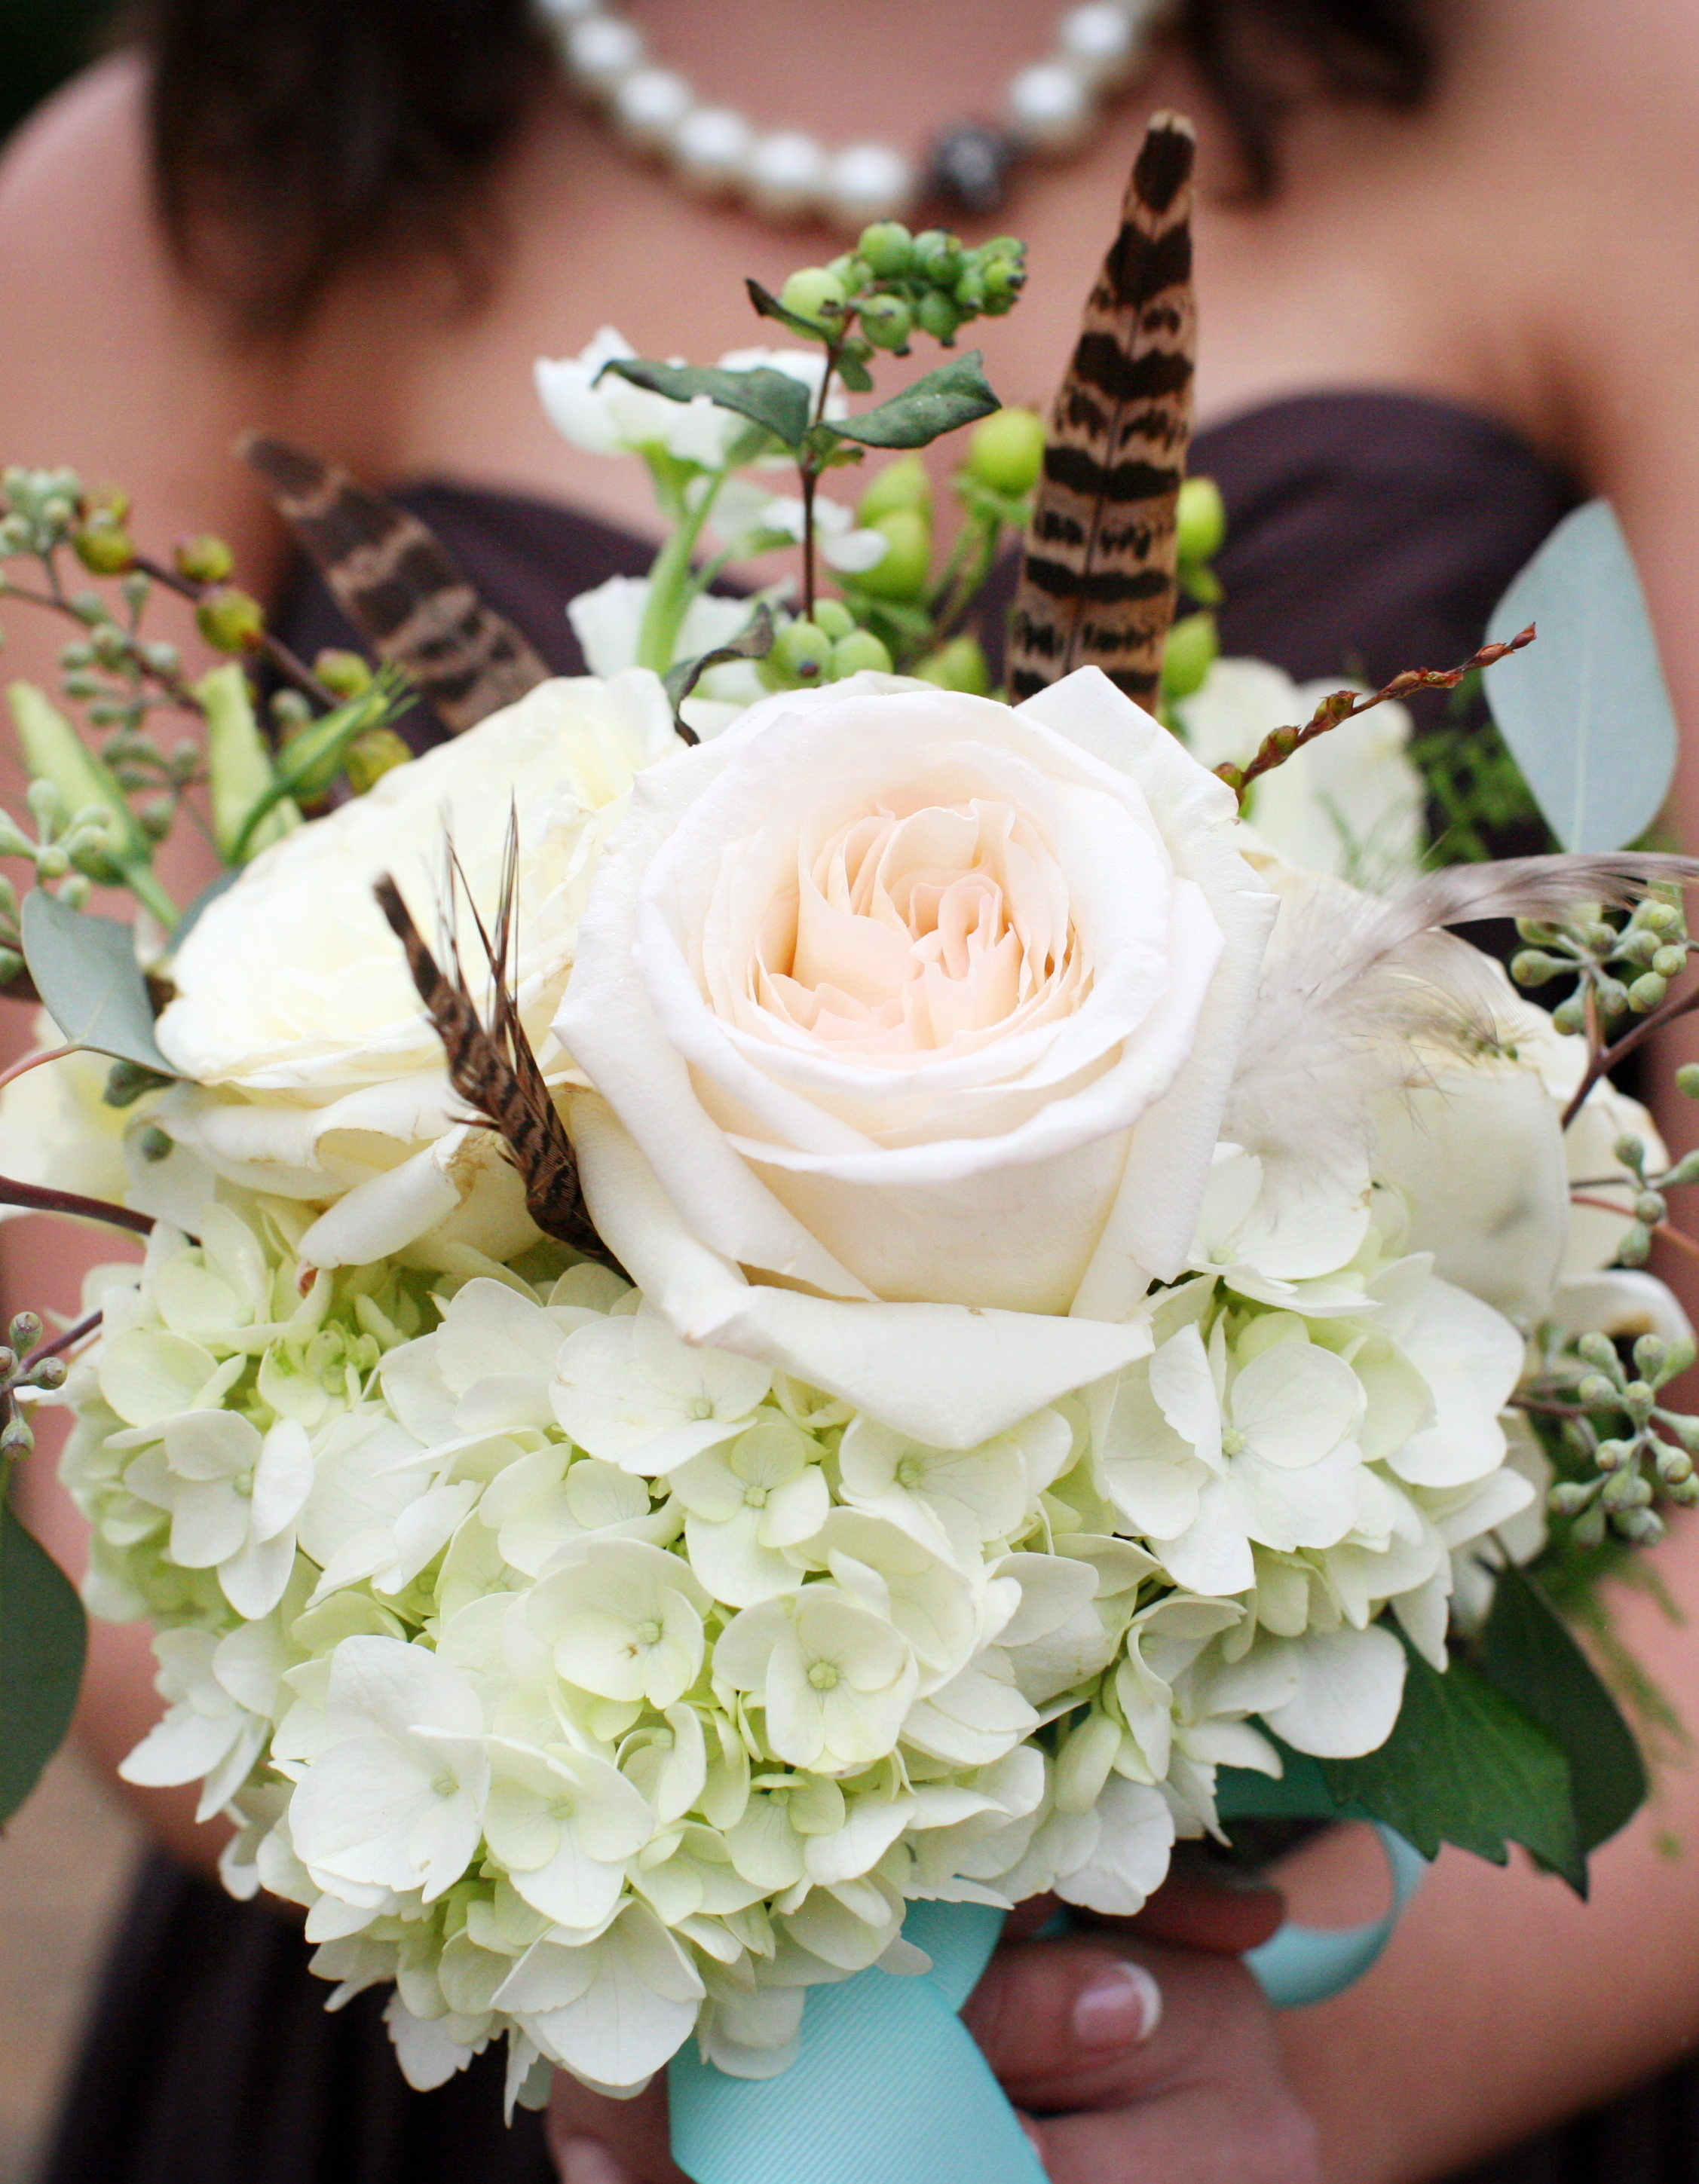 Beauty, ivory, Feathers, Fall, Rustic, Bouquet, Bridesmaid, Courtney sawyer